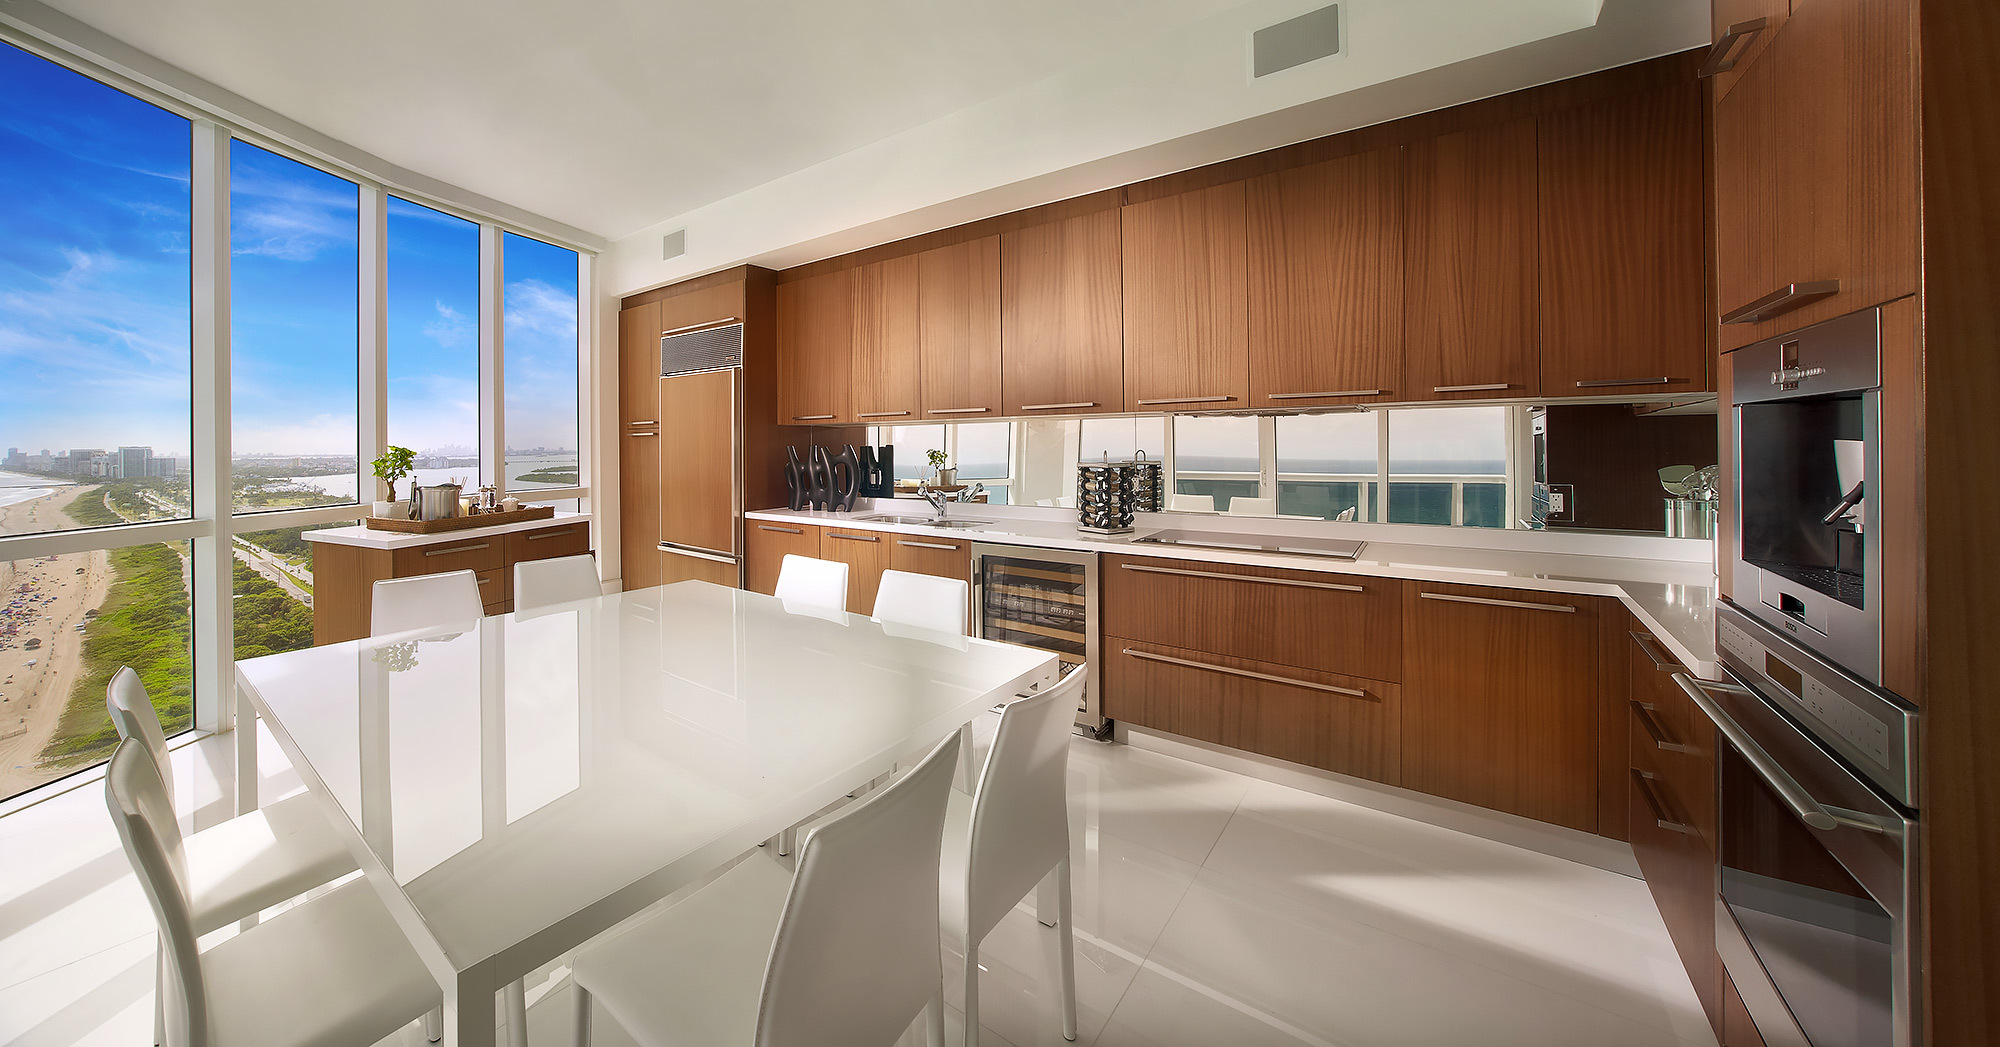 Luxury-Real-Estate-Photography-Kitchen-Beach-View